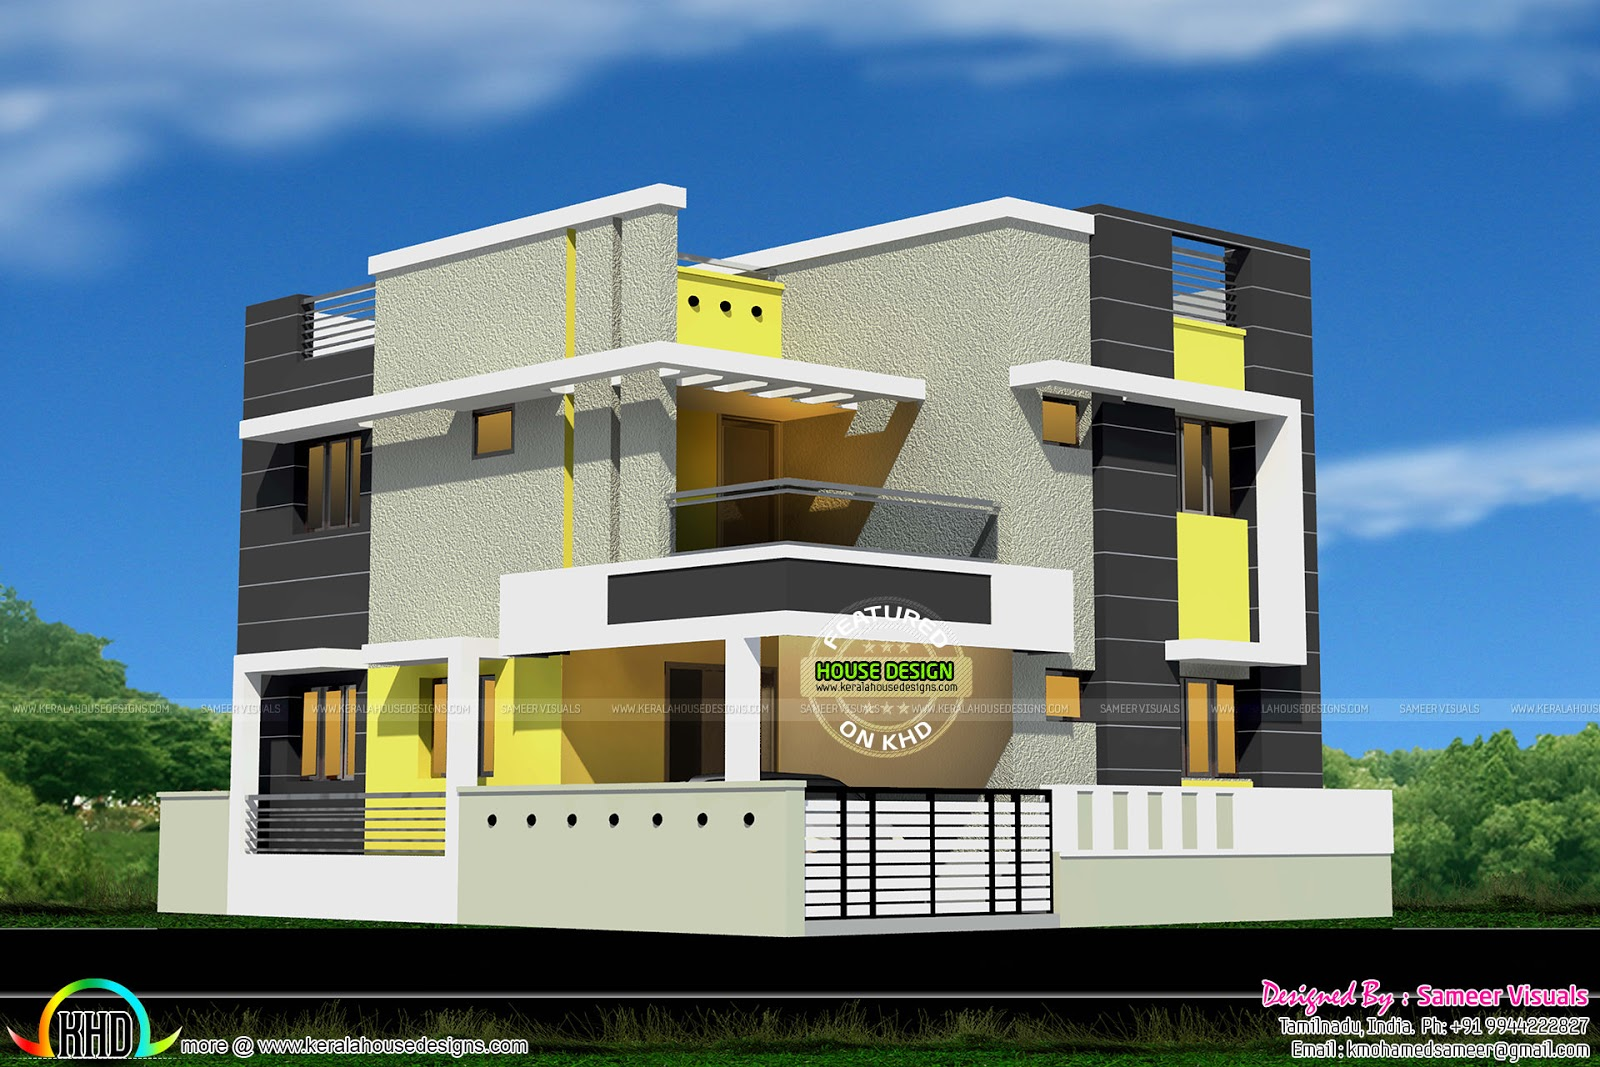 New modern house design kerala home design and floor plans New house design